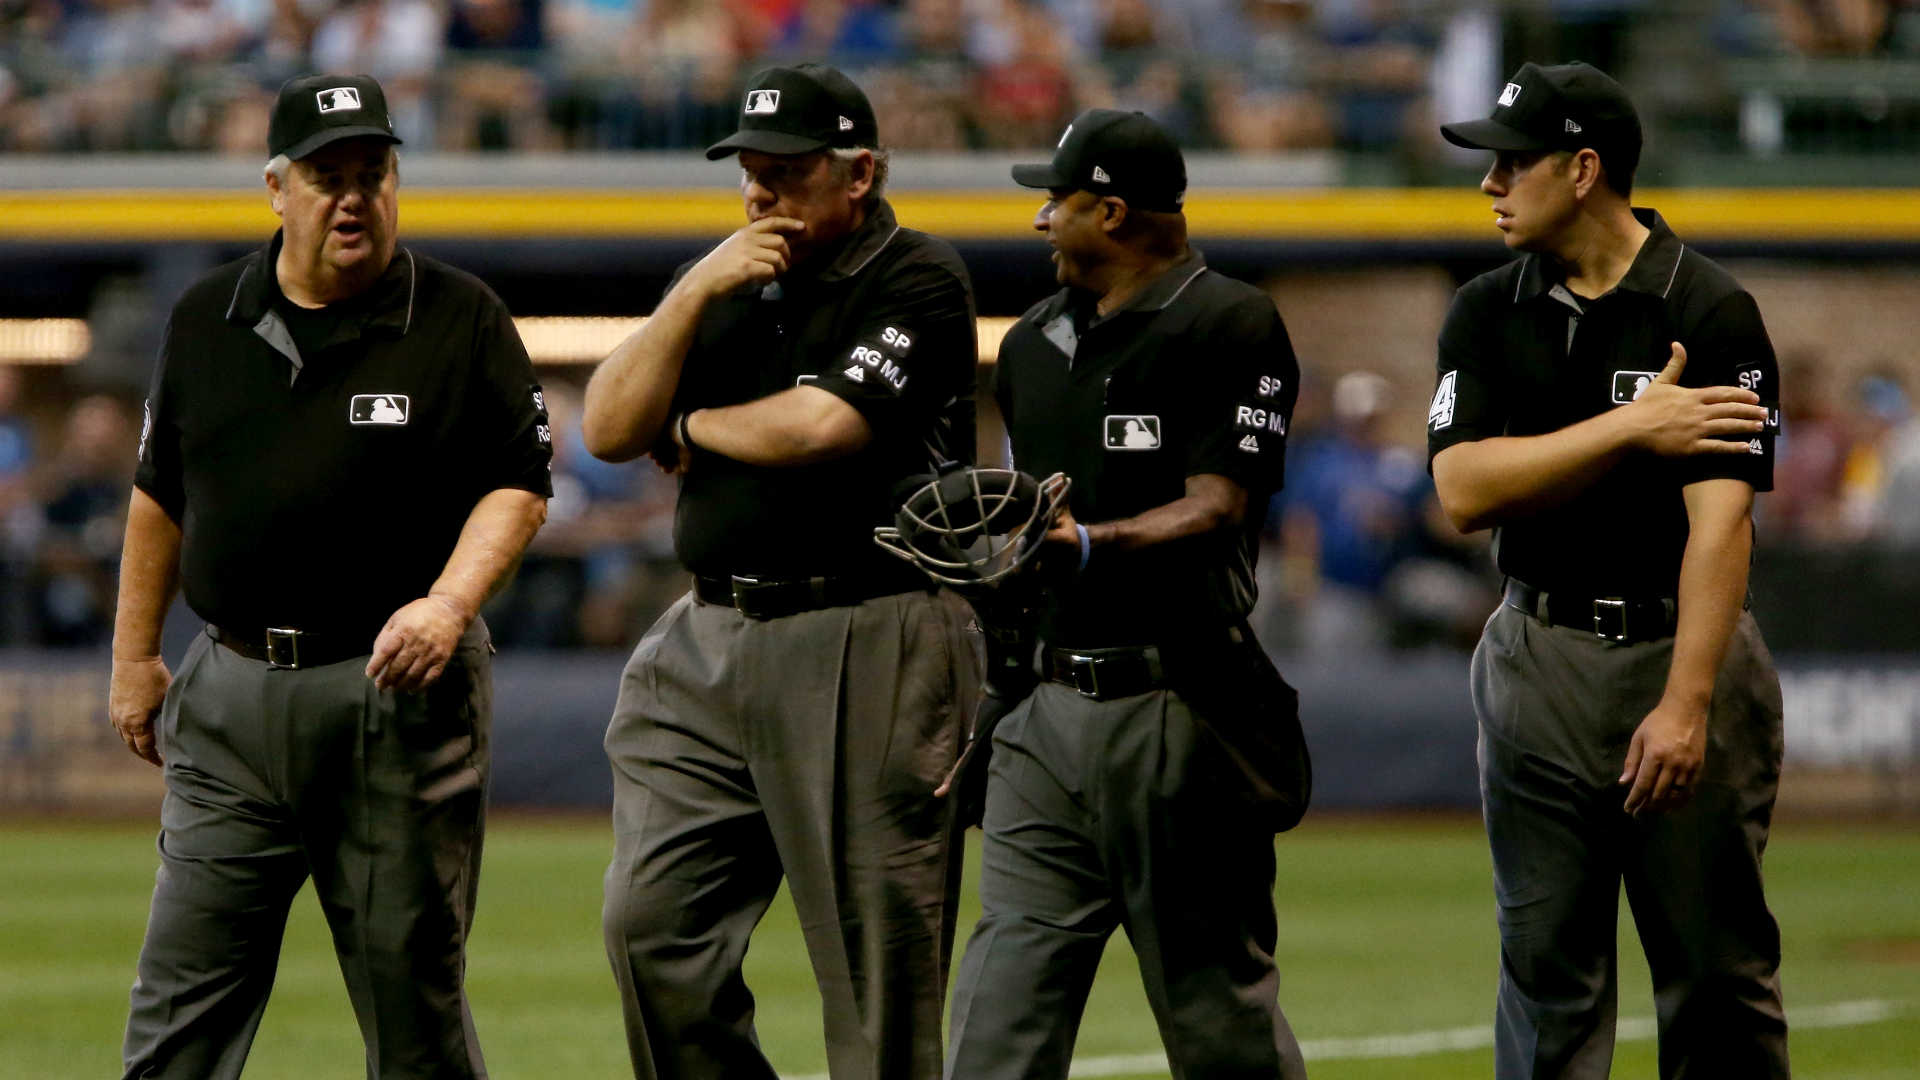 MLB umpires opt out